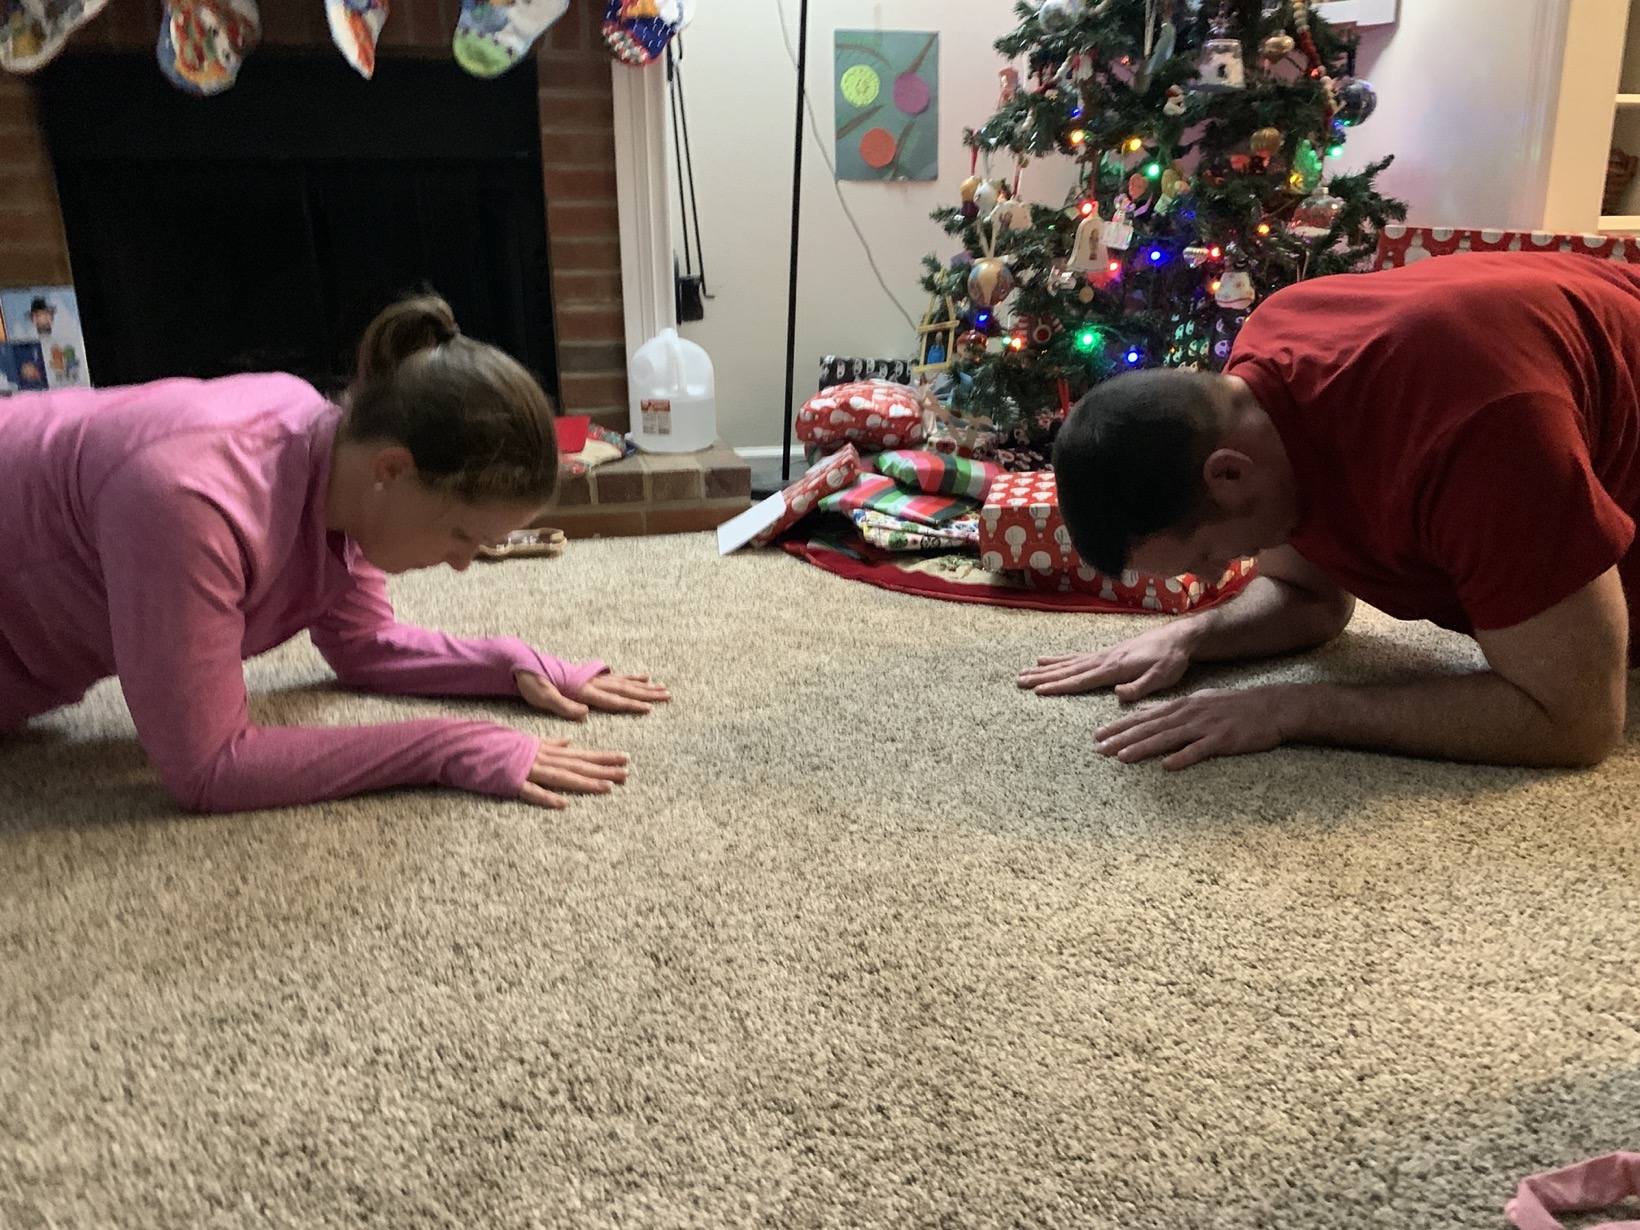 30 day plank challenge by the tree